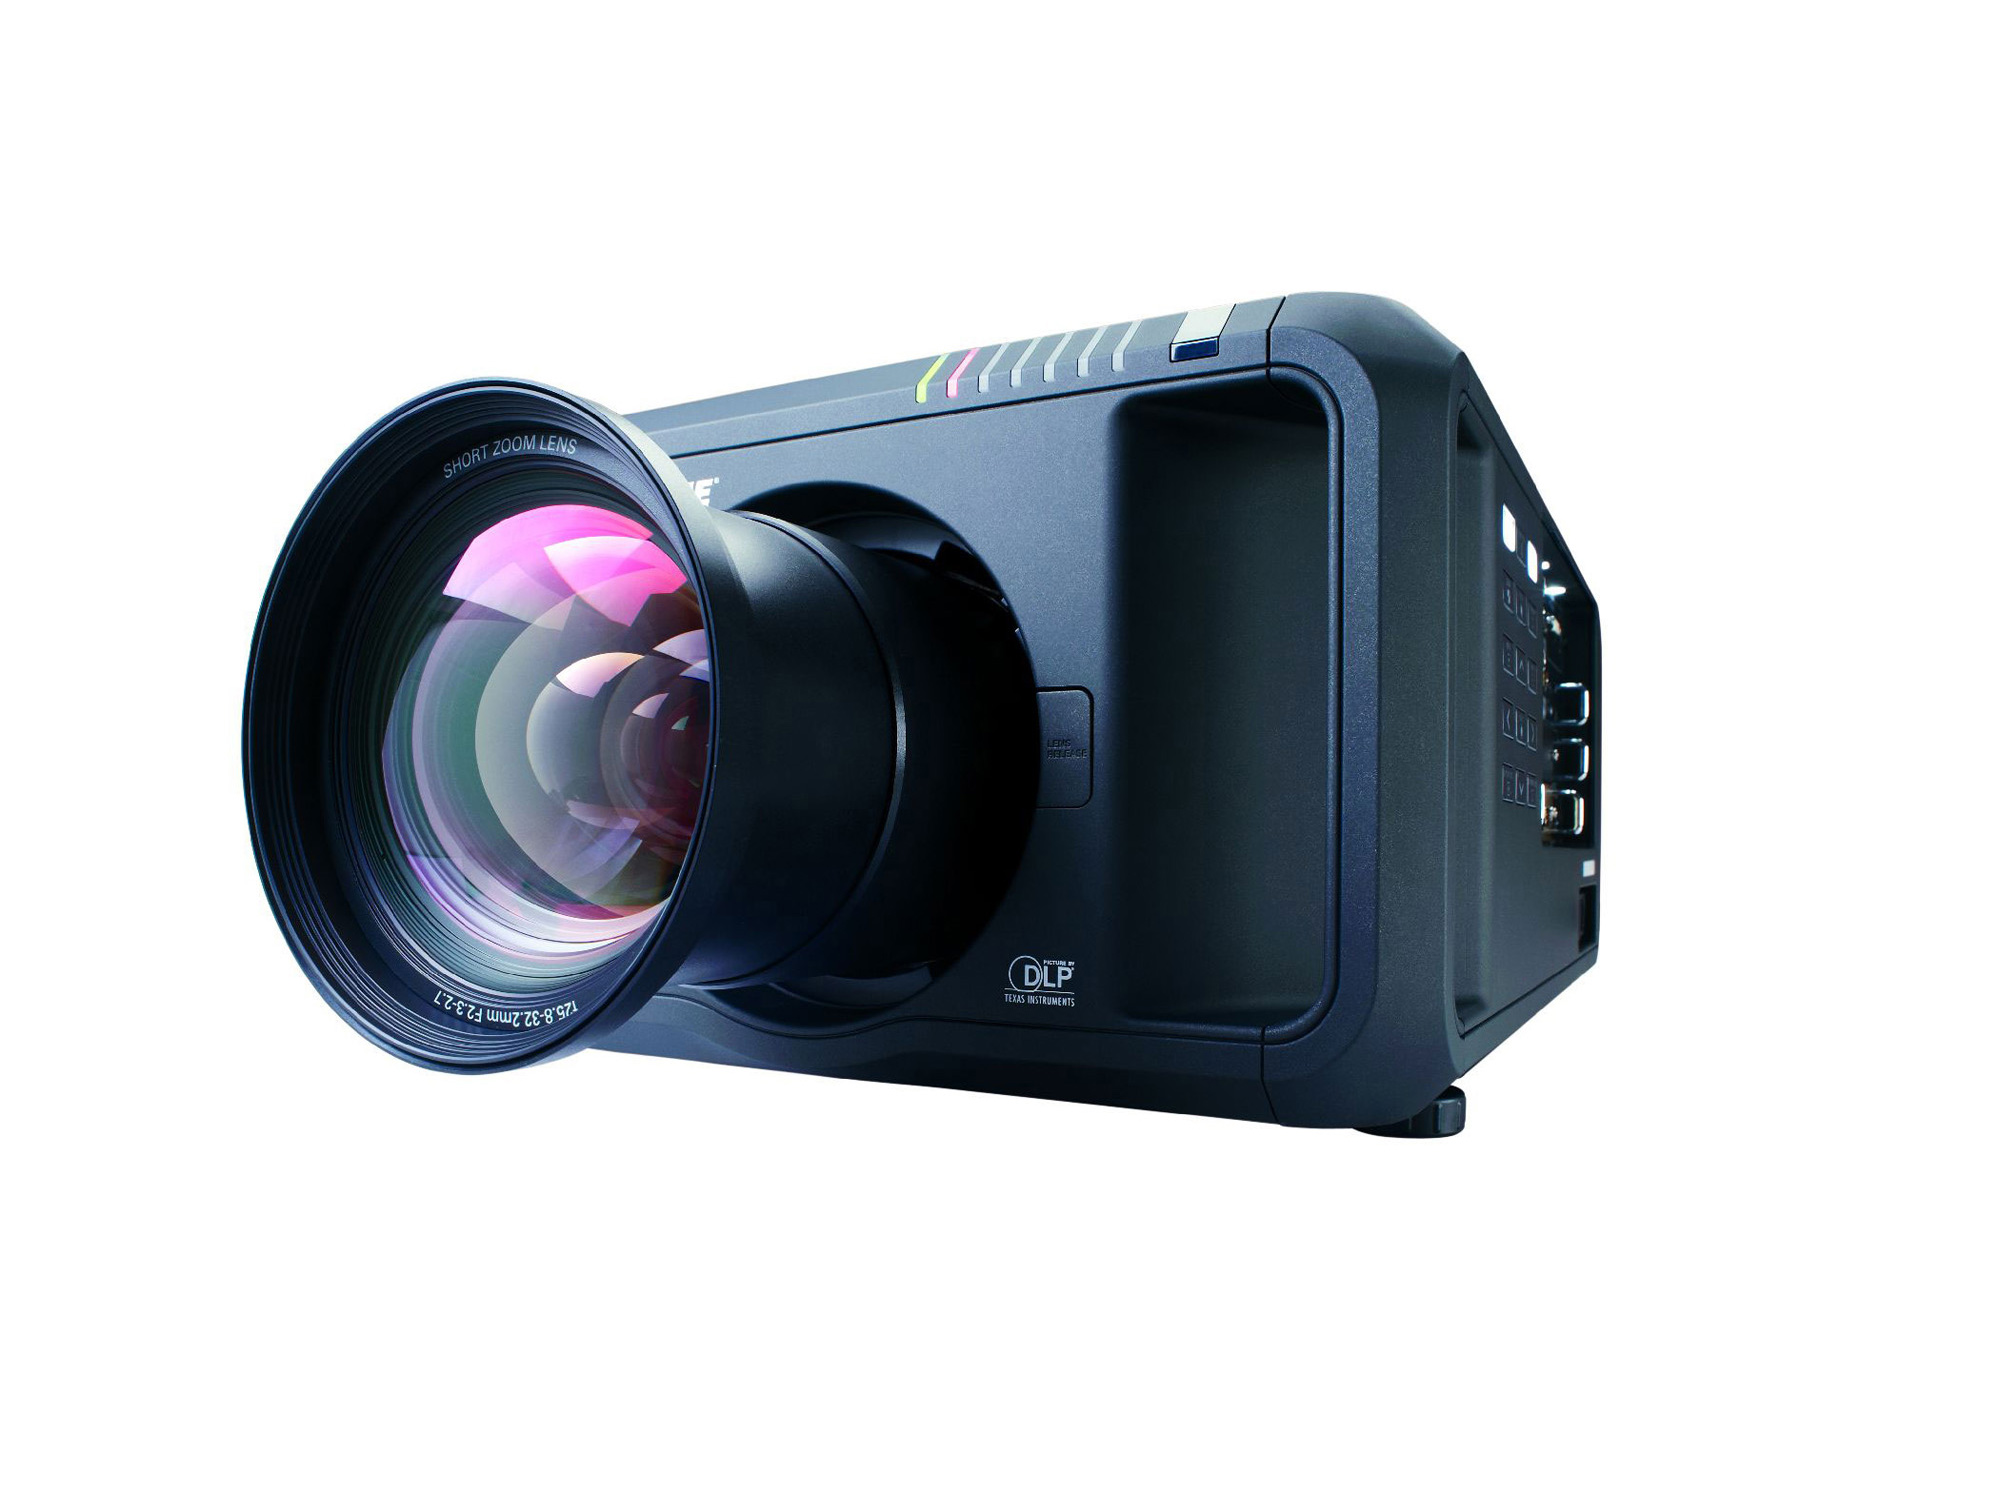 /globalassets/.catalog/products/images/christie-dhd700/gallery/christie-dhd700-1-chip-digital-projector-image10.jpg